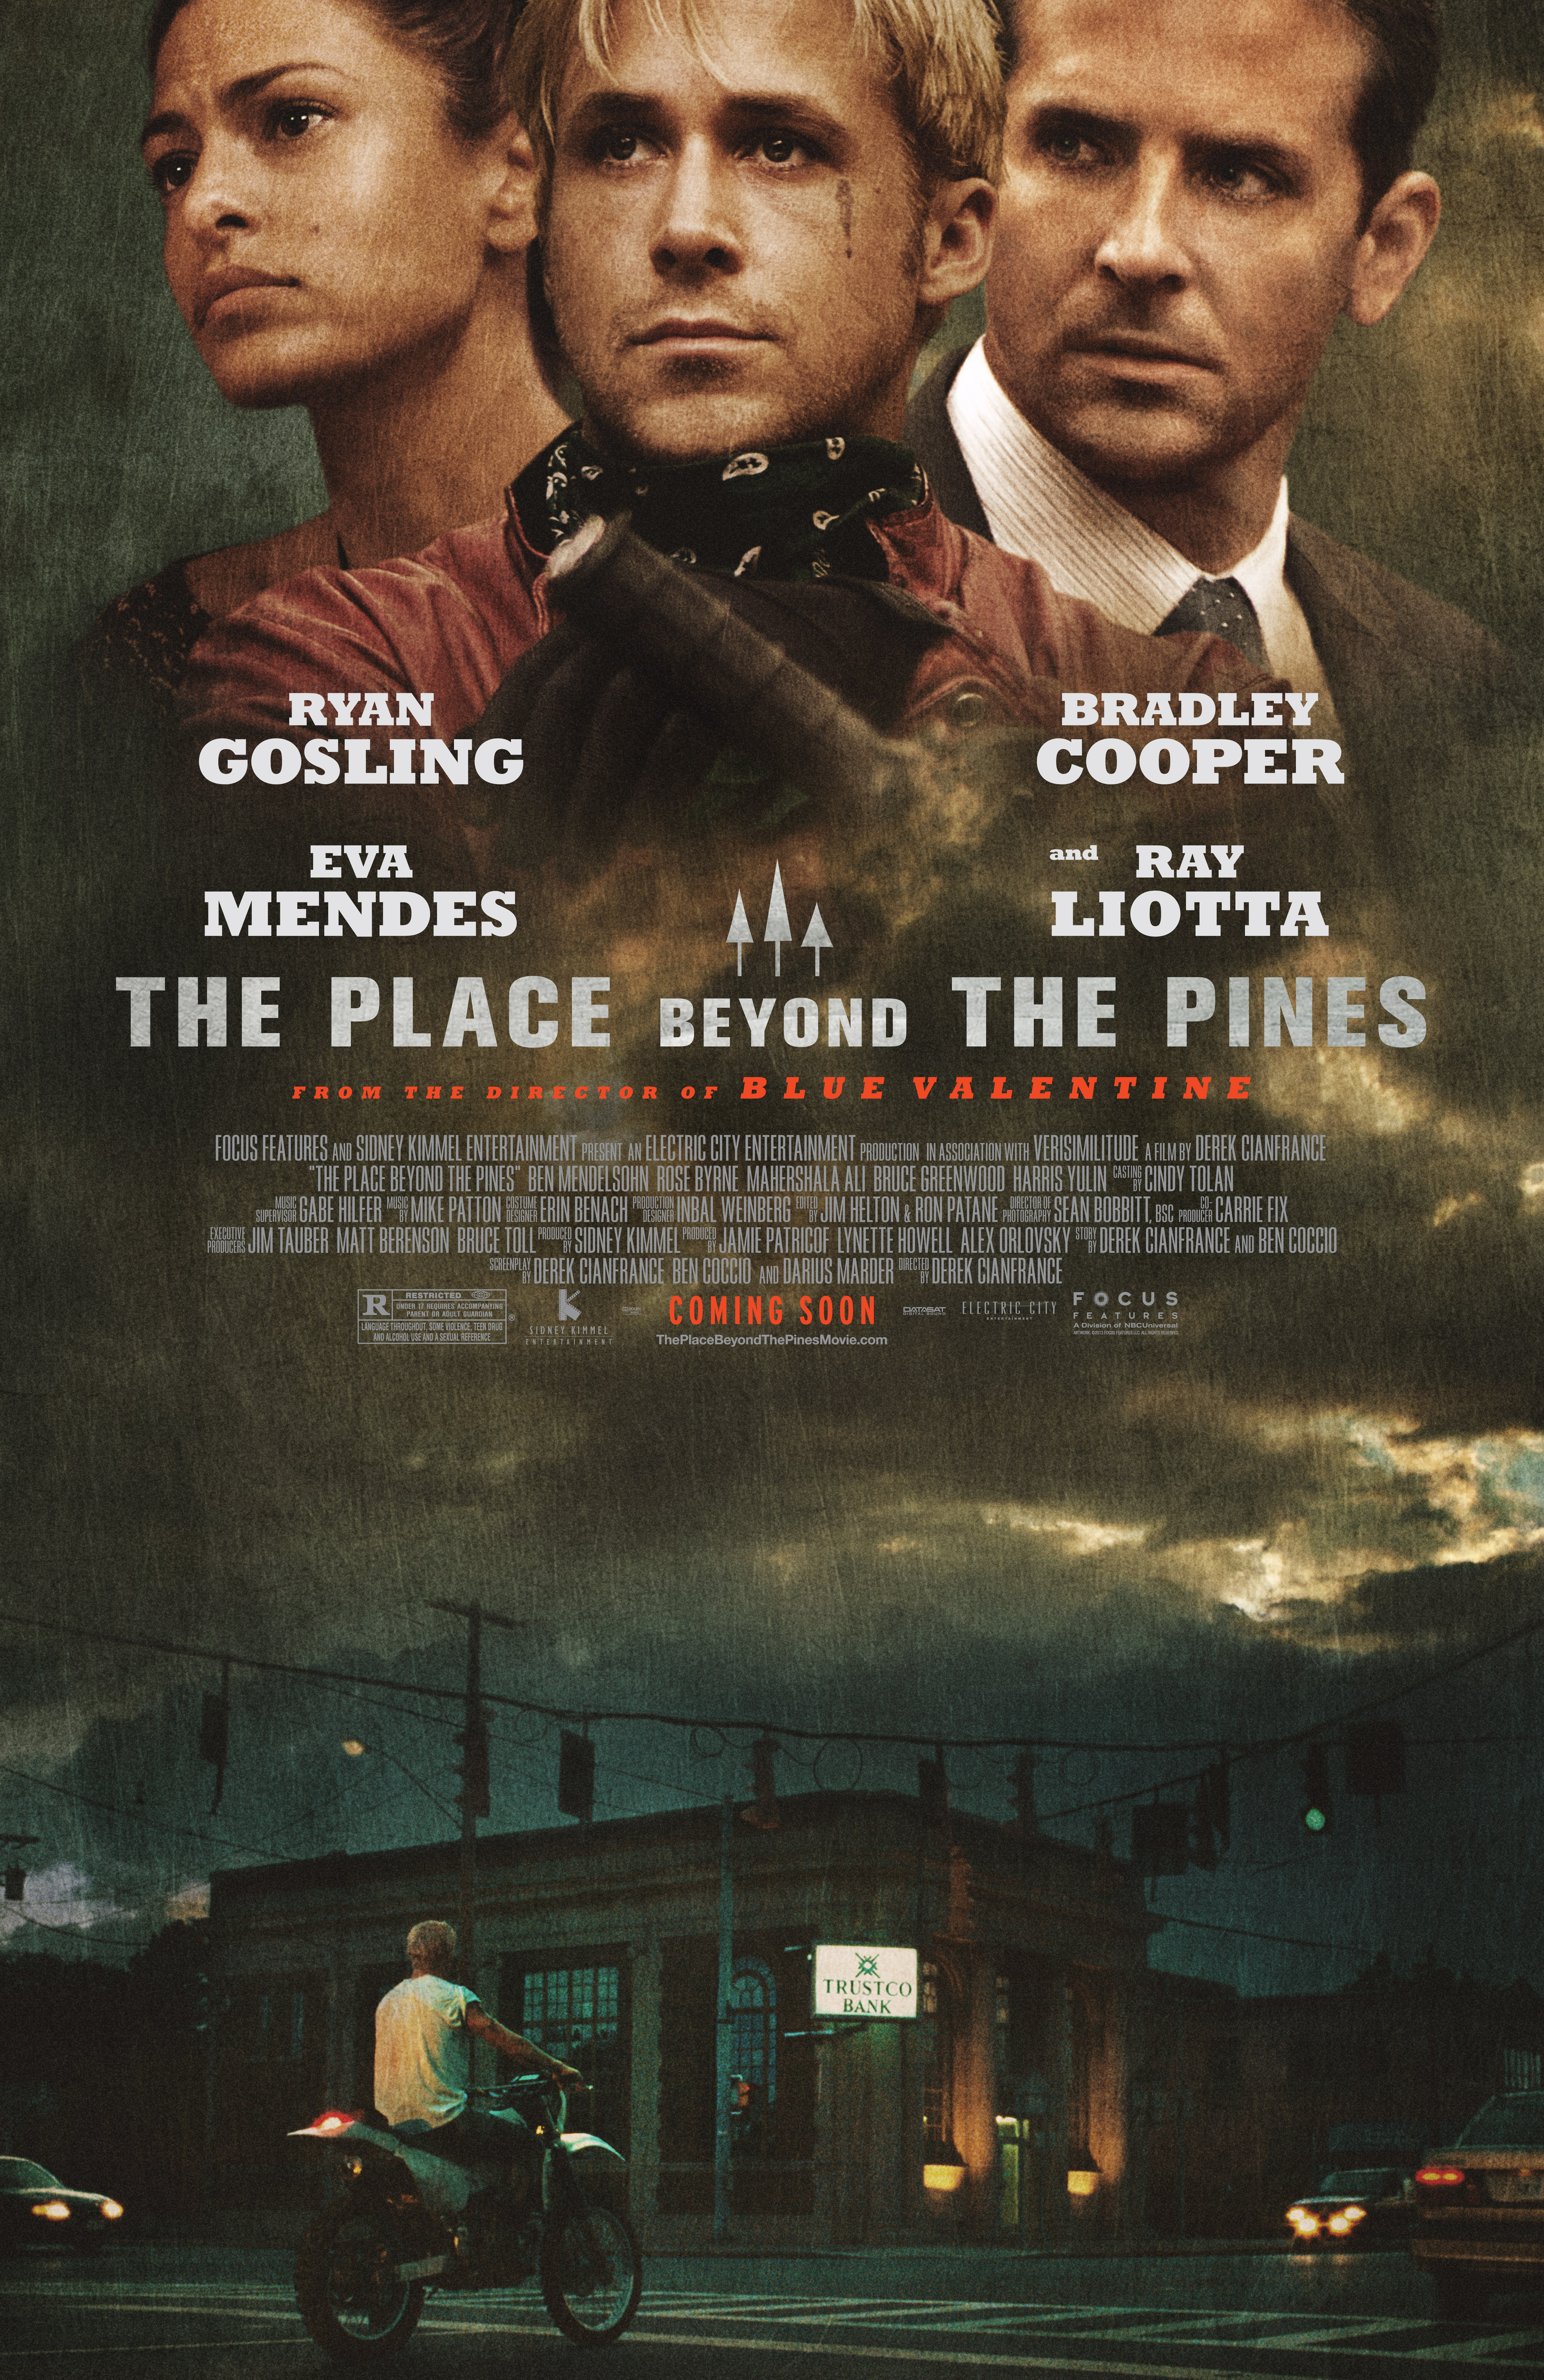 The Place Beyond the Pines Official Poster1 New Featurette For The Place Beyond The Pines Released